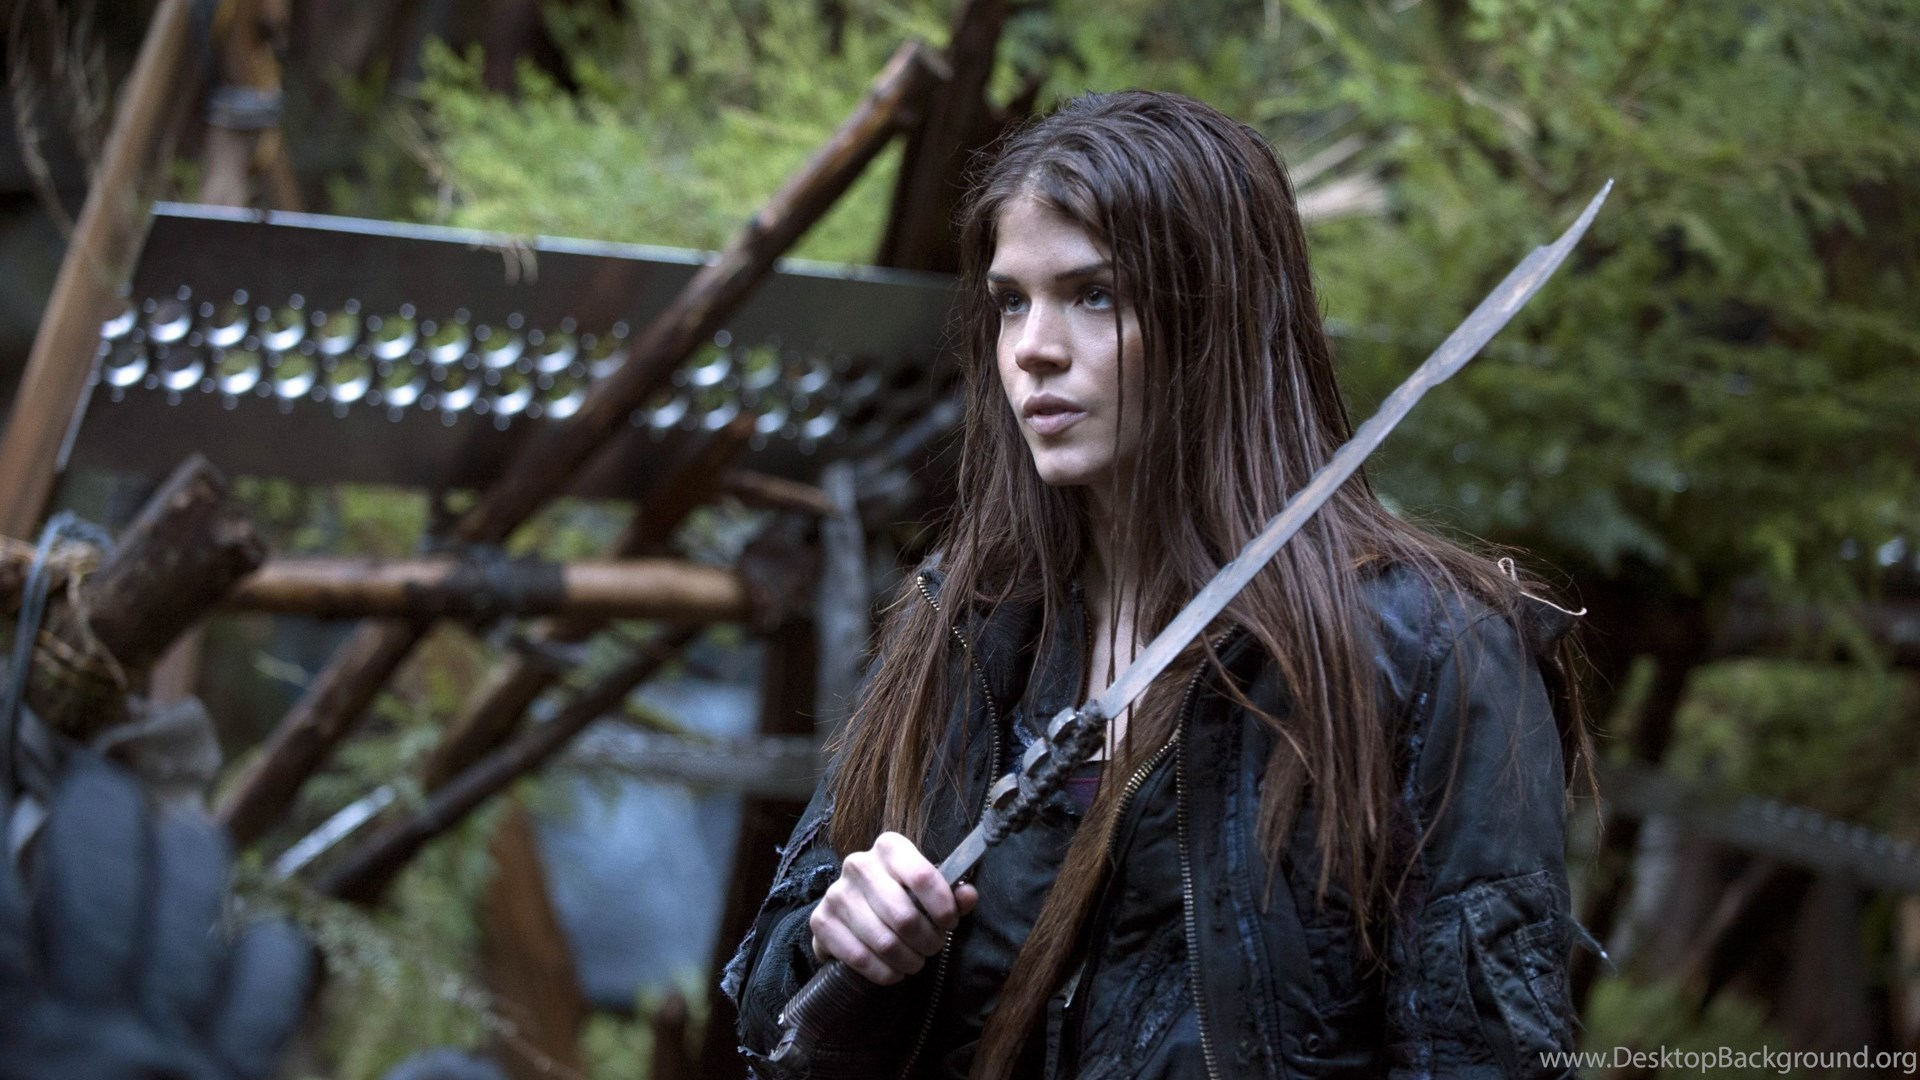 100 Seriously Awesome Ipad Pro Wallpapers: Octavia Blake The 100 Awesome Photo Wallpapers Desktop